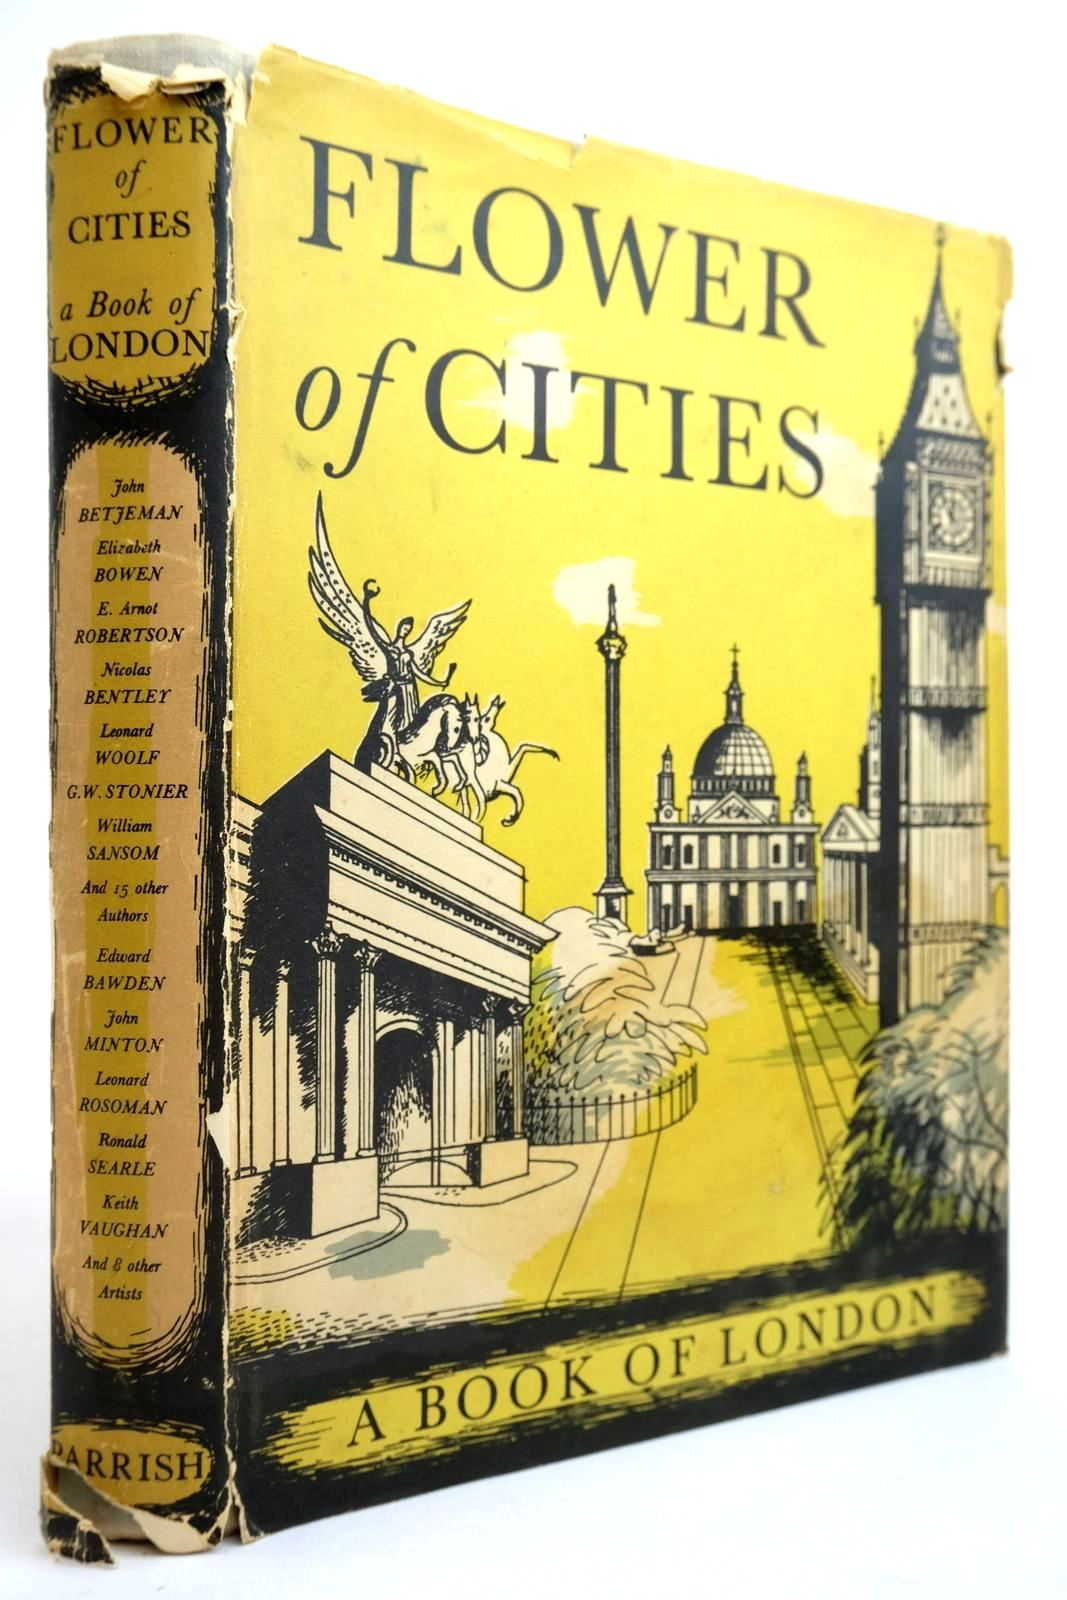 Photo of FLOWER OF CITIES A BOOK OF LONDON written by Betjeman, John Sykes, Christopher Maude, Angus Bowen, Elizabeth et al, illustrated by Bawden, Edward Knight, David Searle, Ronald Jones, Barbara et al., published by Max Parrish And Co Ltd (STOCK CODE: 2134330)  for sale by Stella & Rose's Books